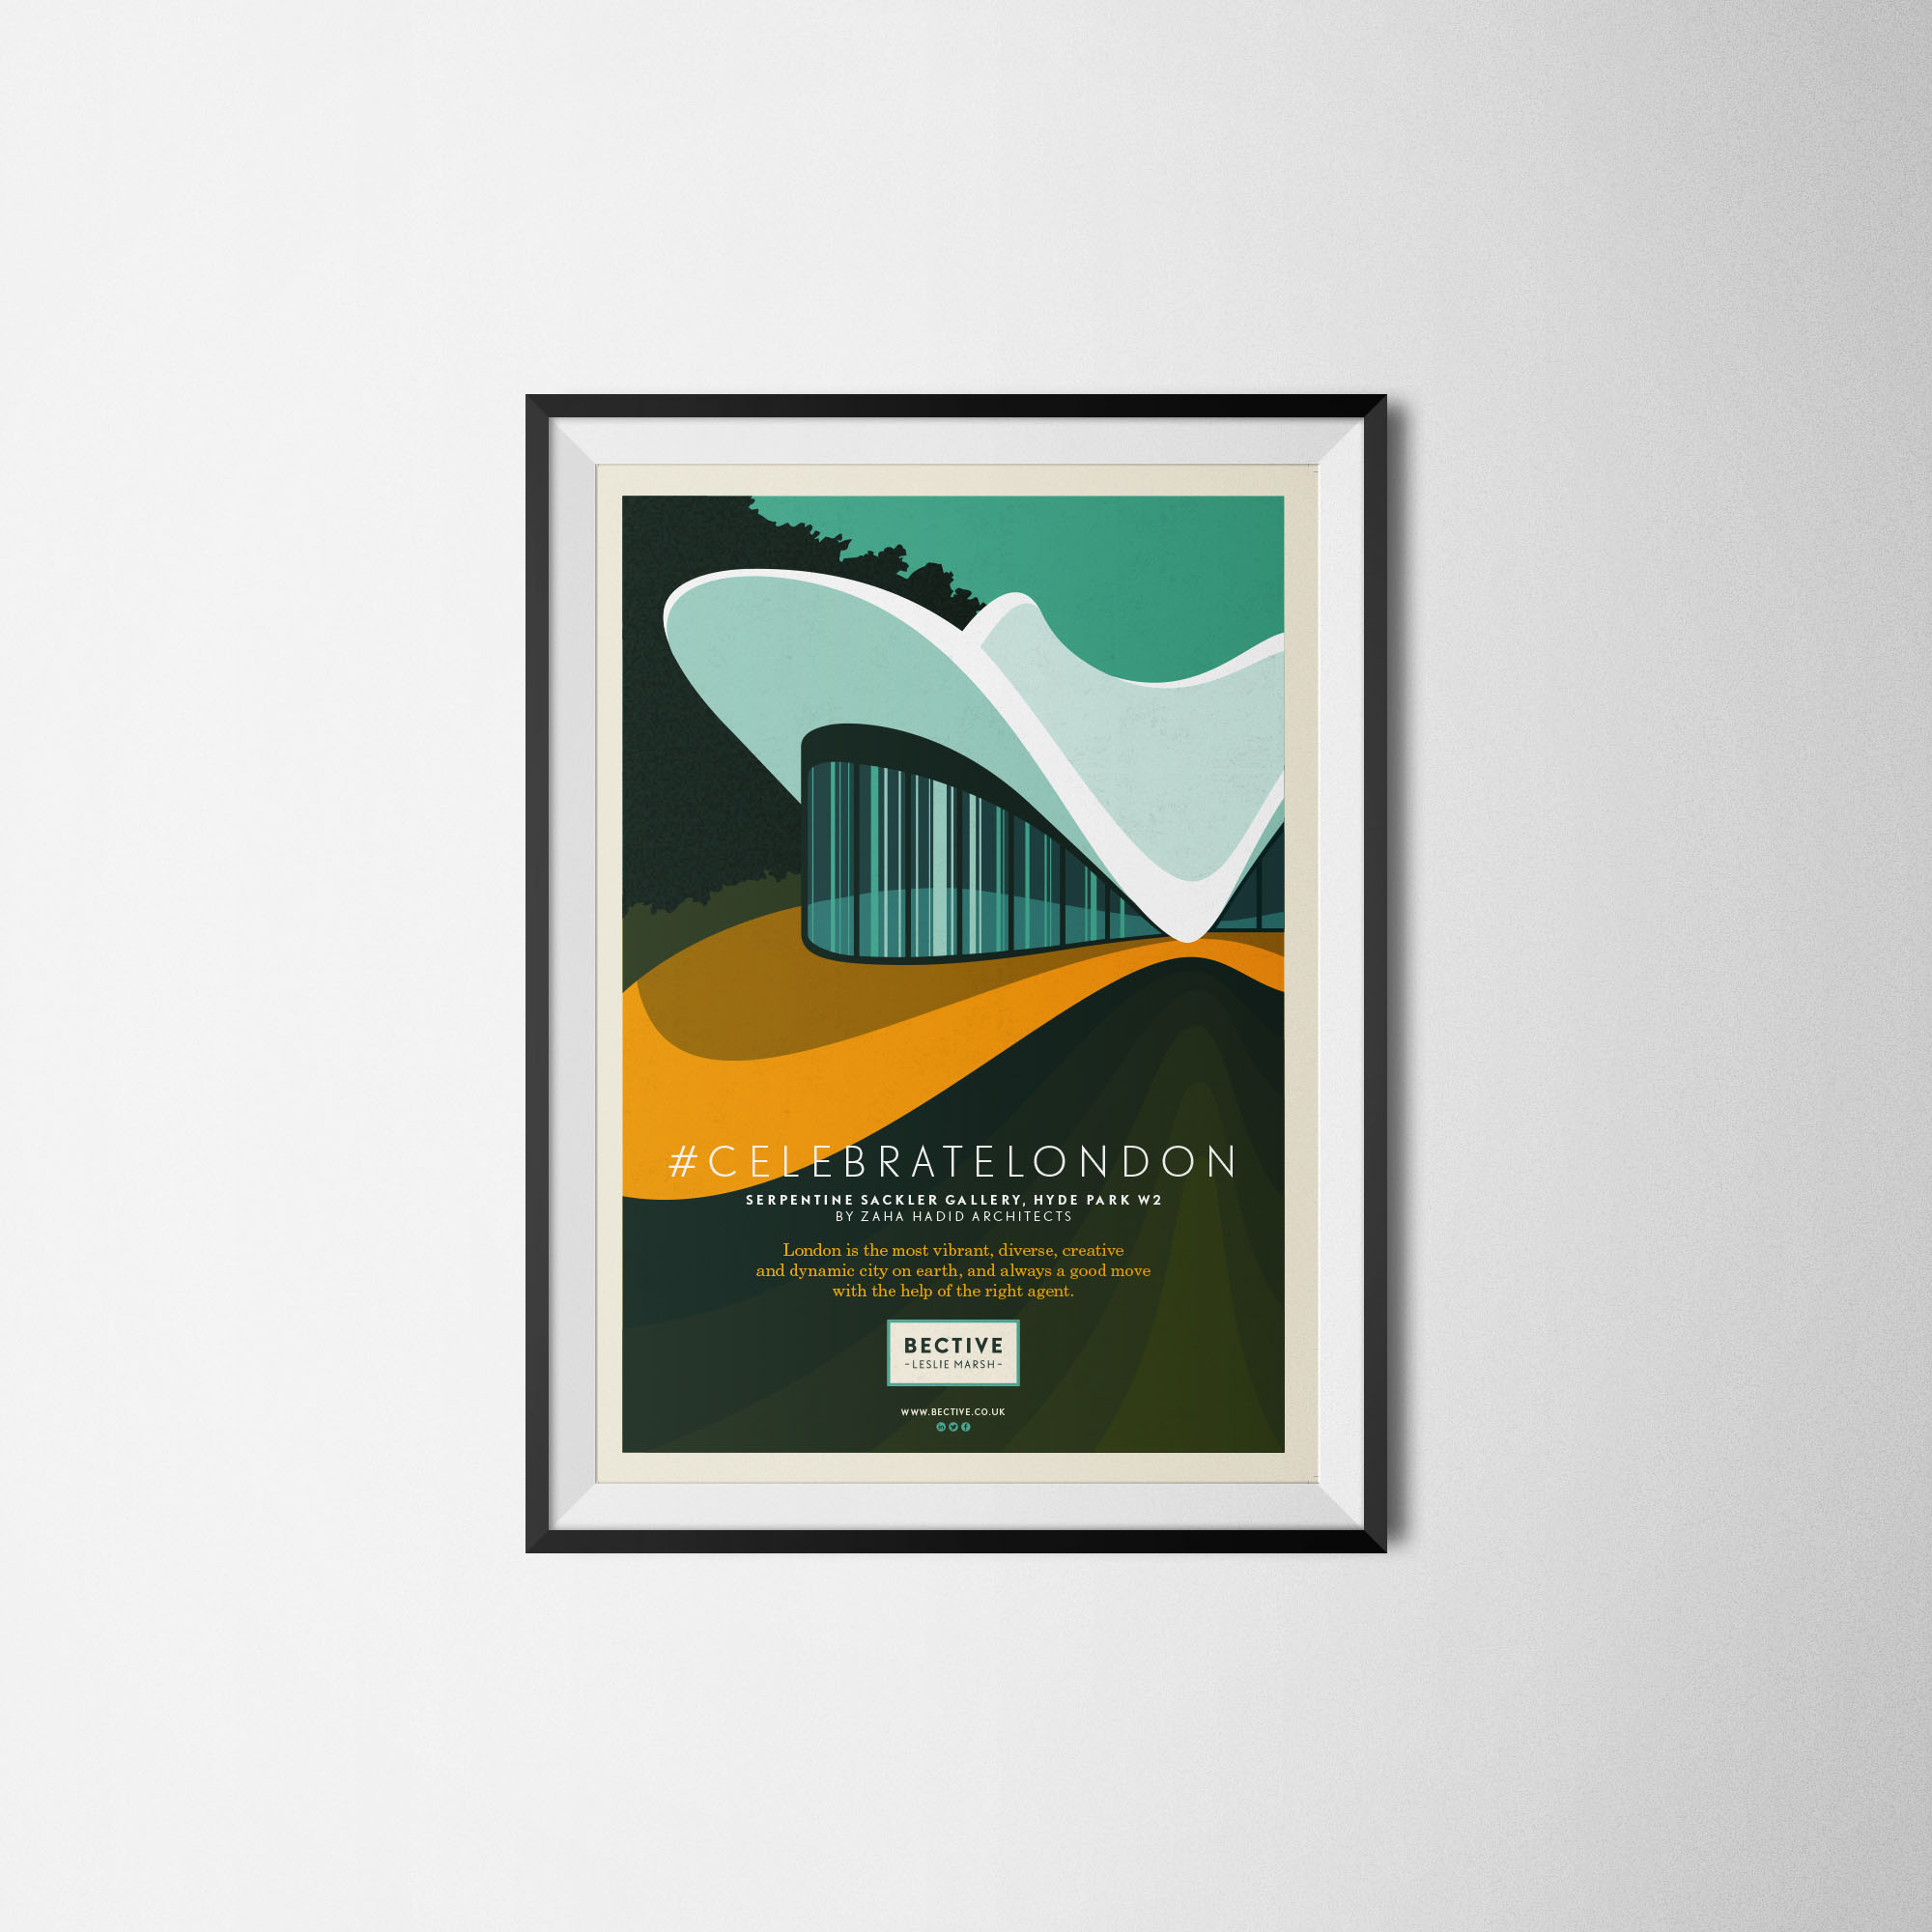 Bective framed illustration